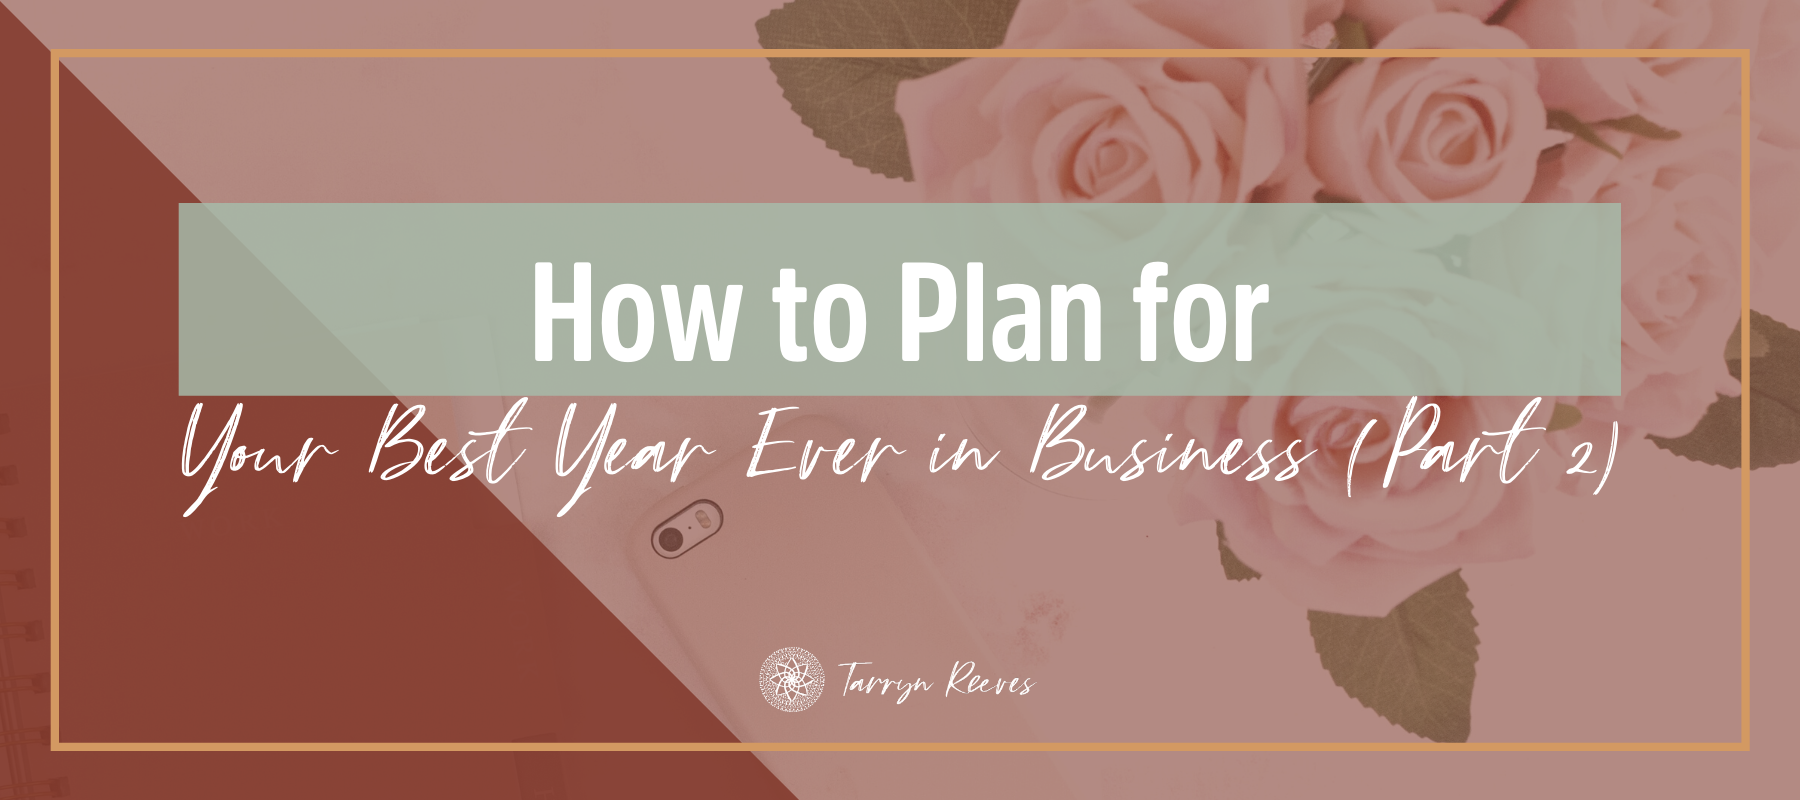 How To Plan For Your Best Year Ever In Business Part 2